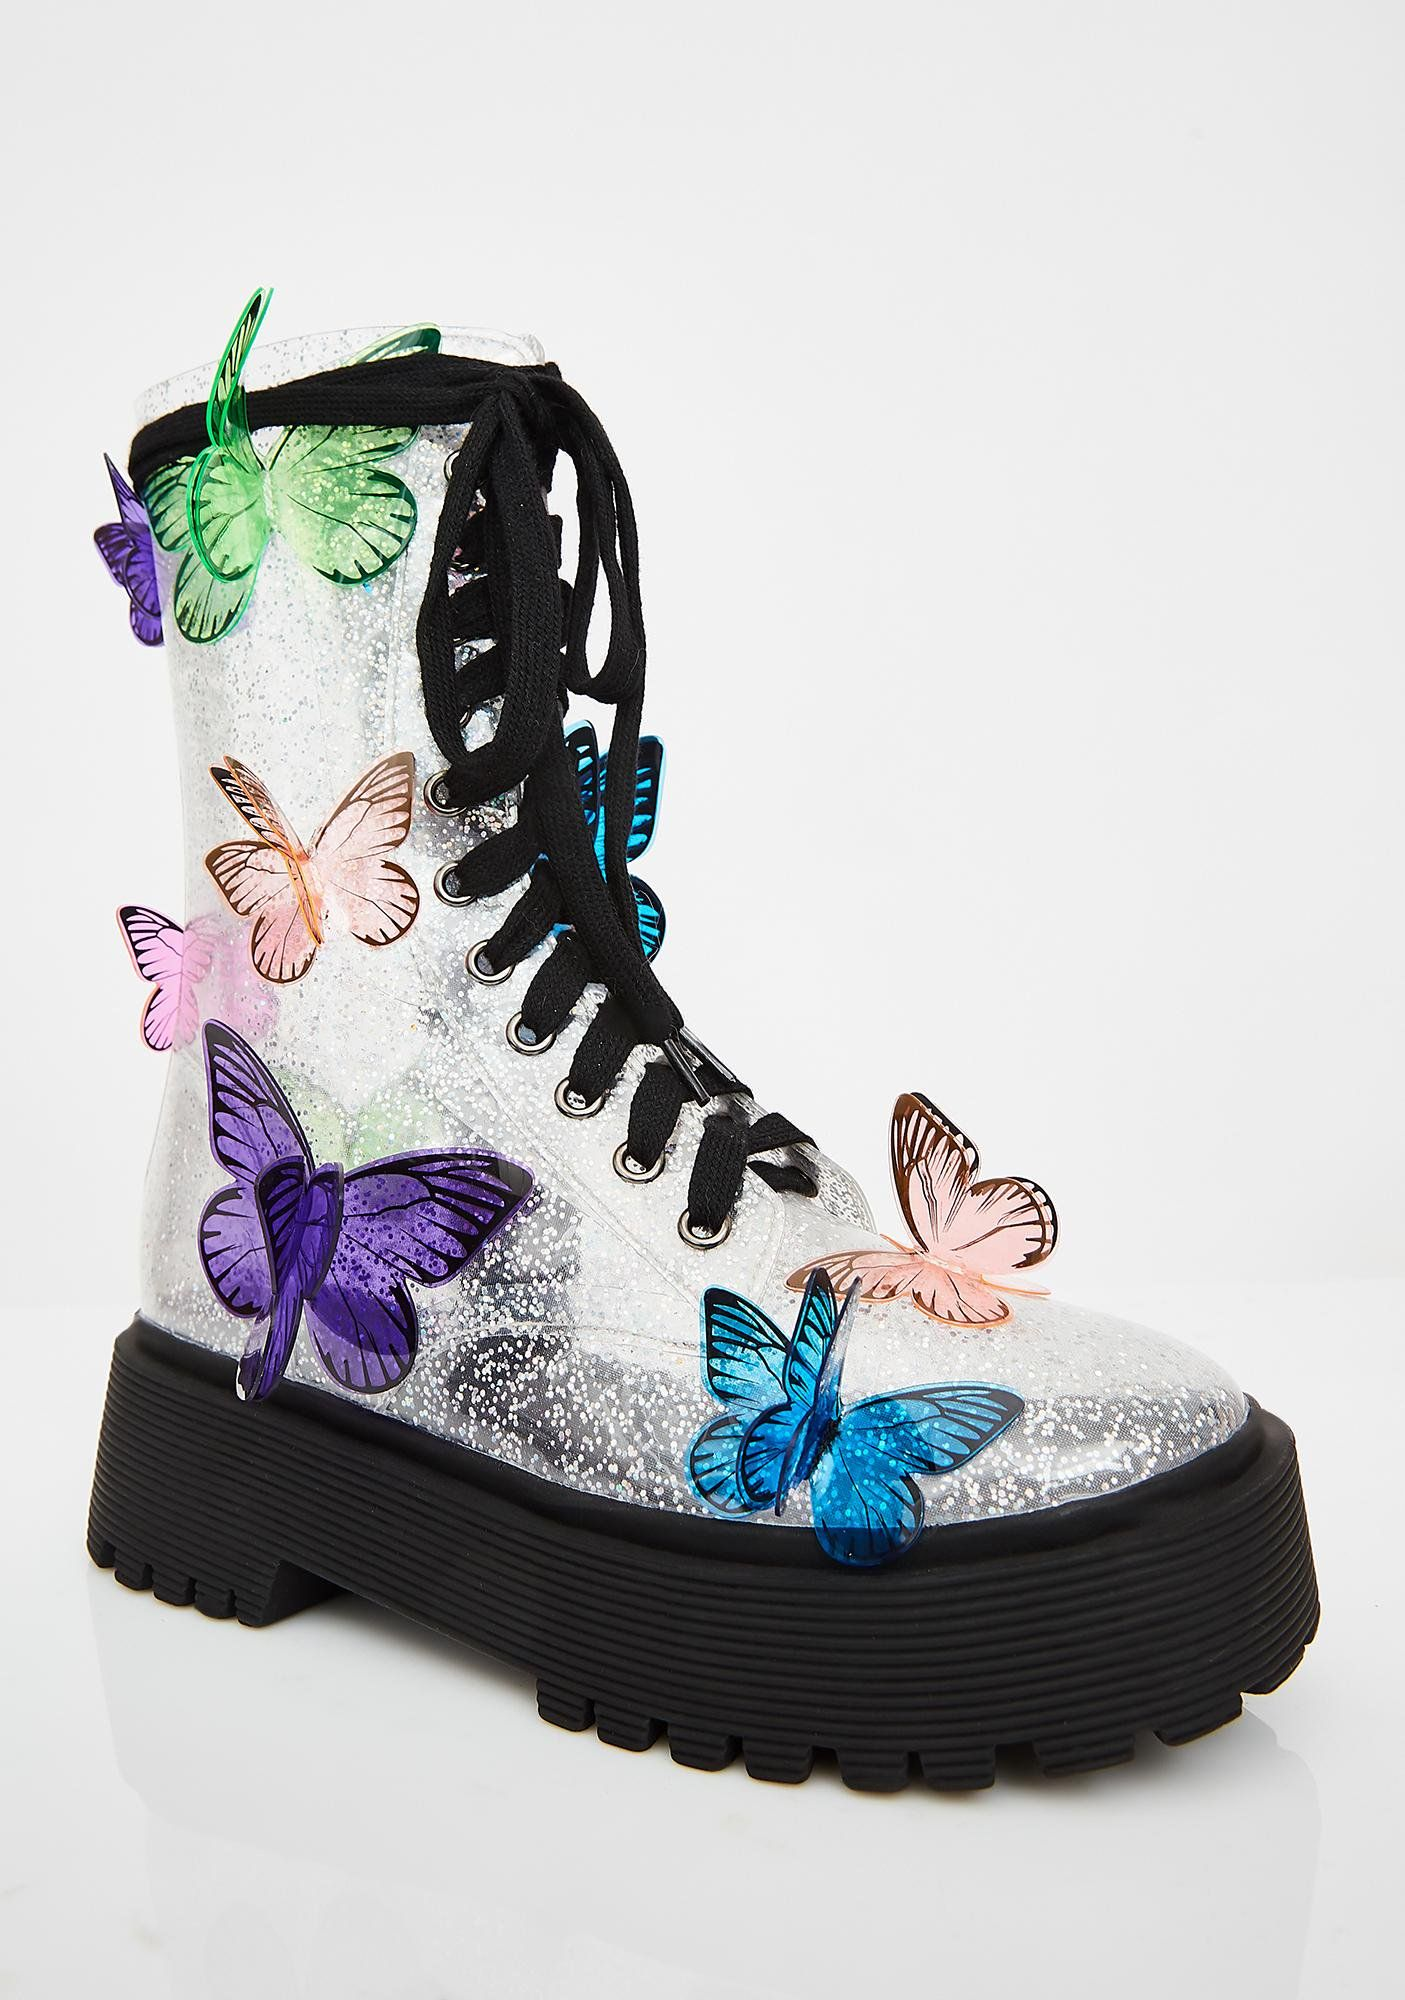 087c46f8b364f Terrarium Butterfly Boots in 2019 | Fairy Tales shoes | Shoes, Boots ...